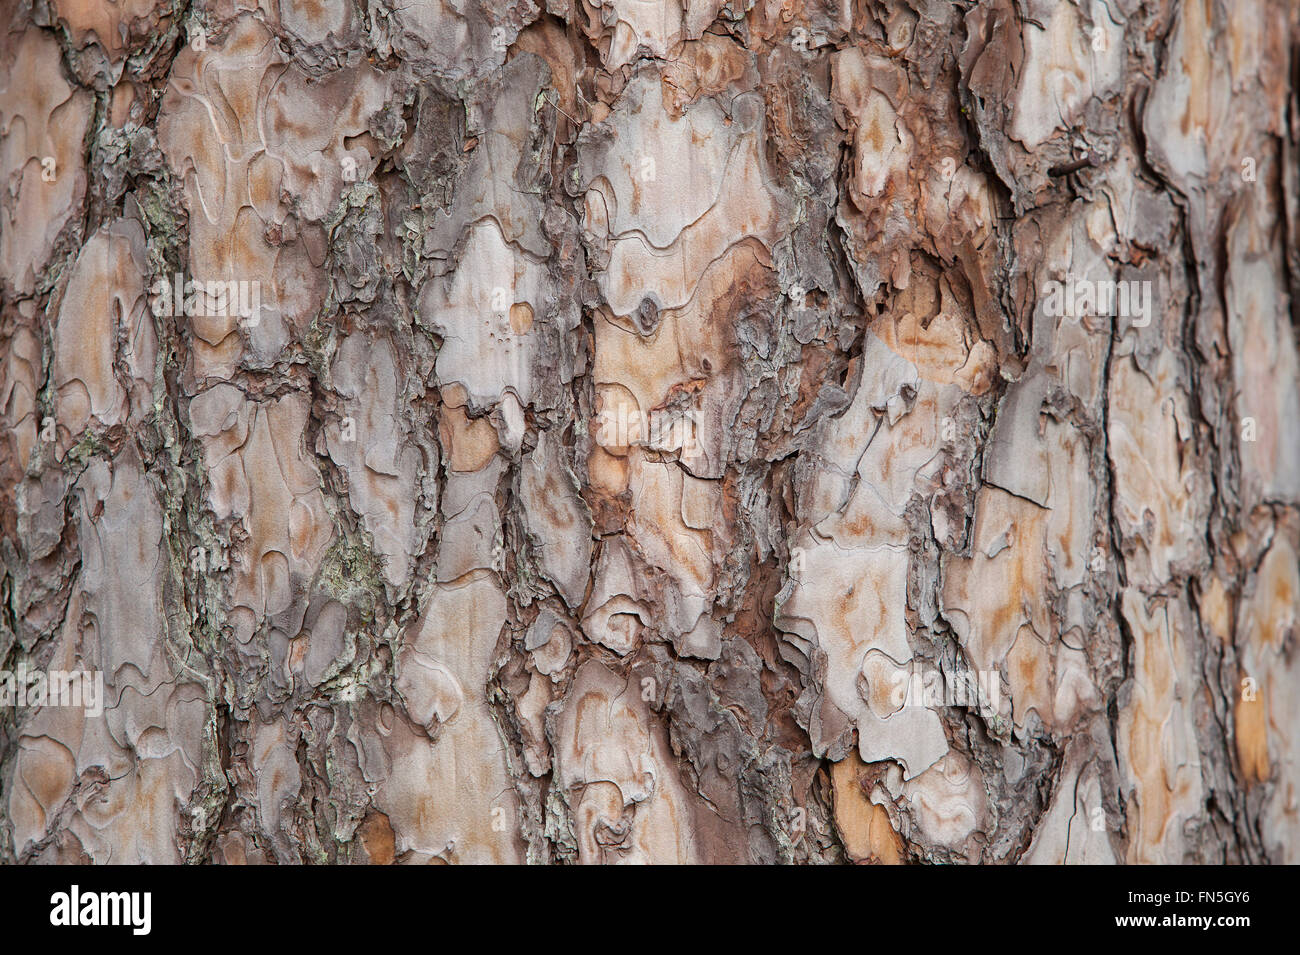 Pine tree bark background. Old tree trunk detail texture as natural background. - Stock Image